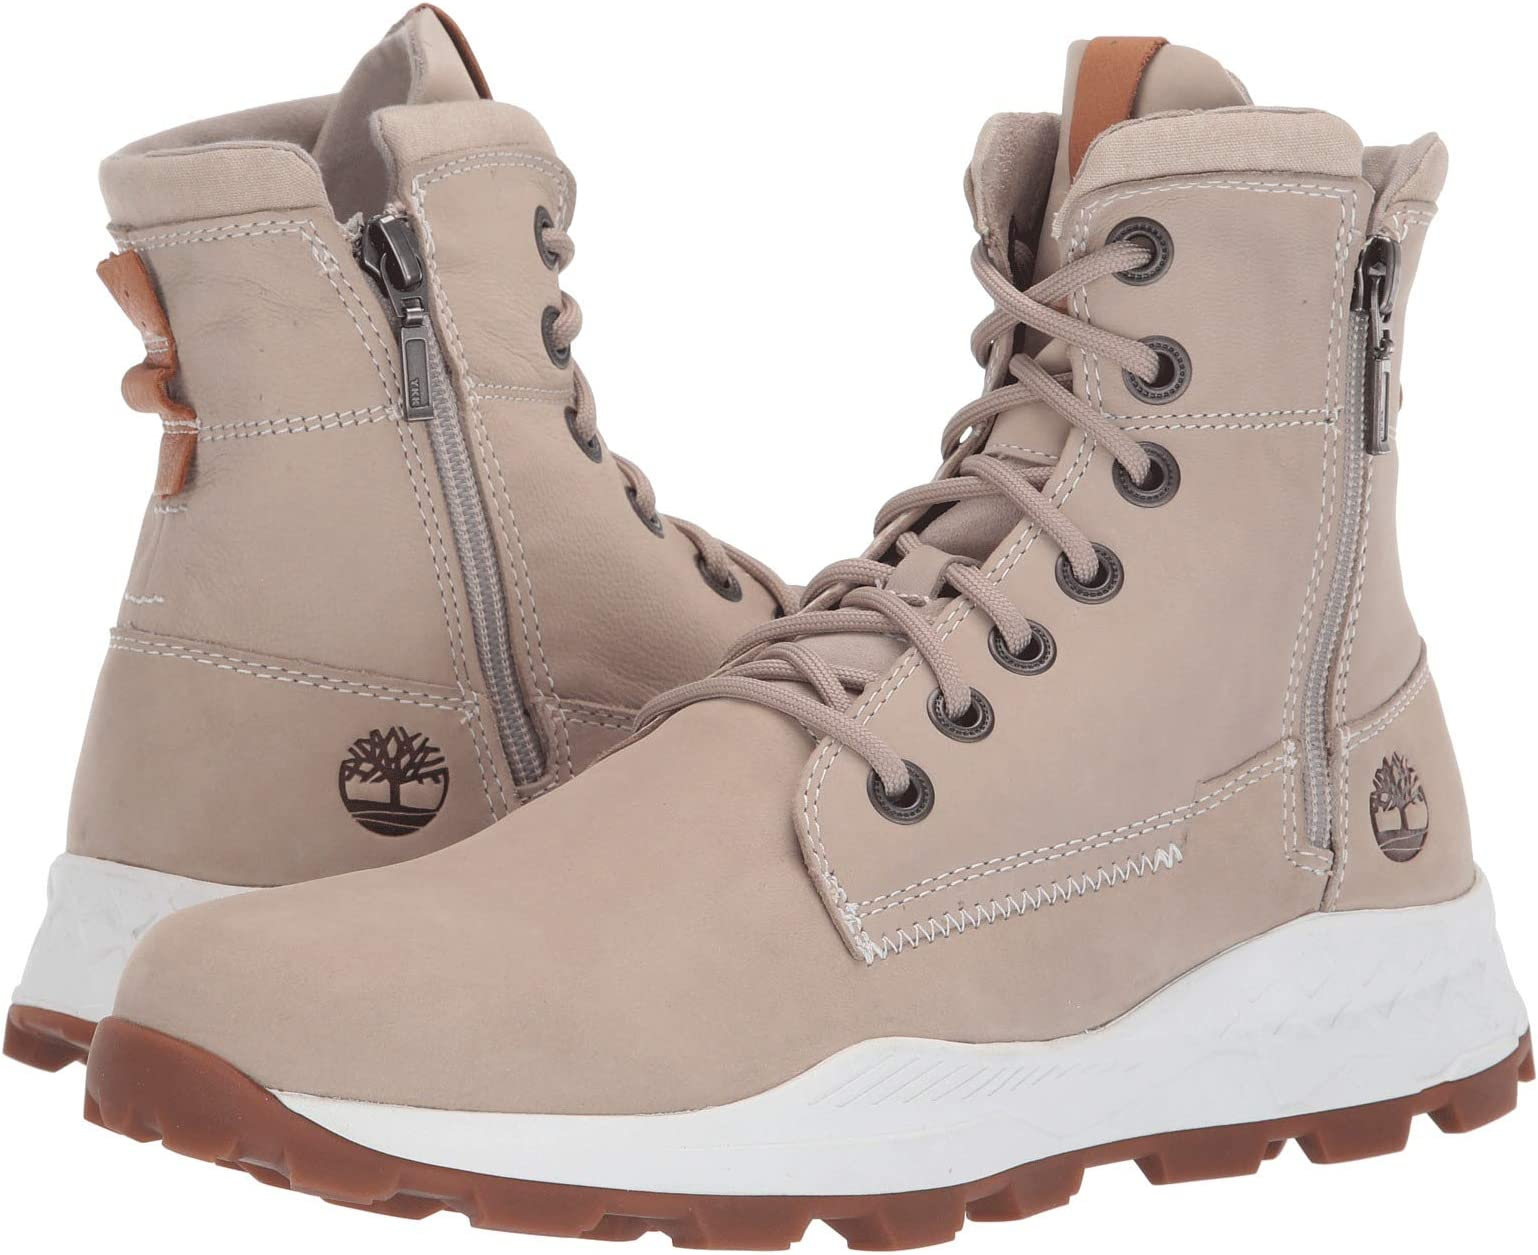 a32f6be8de Timberland Boots & Shoes | Shipped FREE at Zappos | Zappos.com